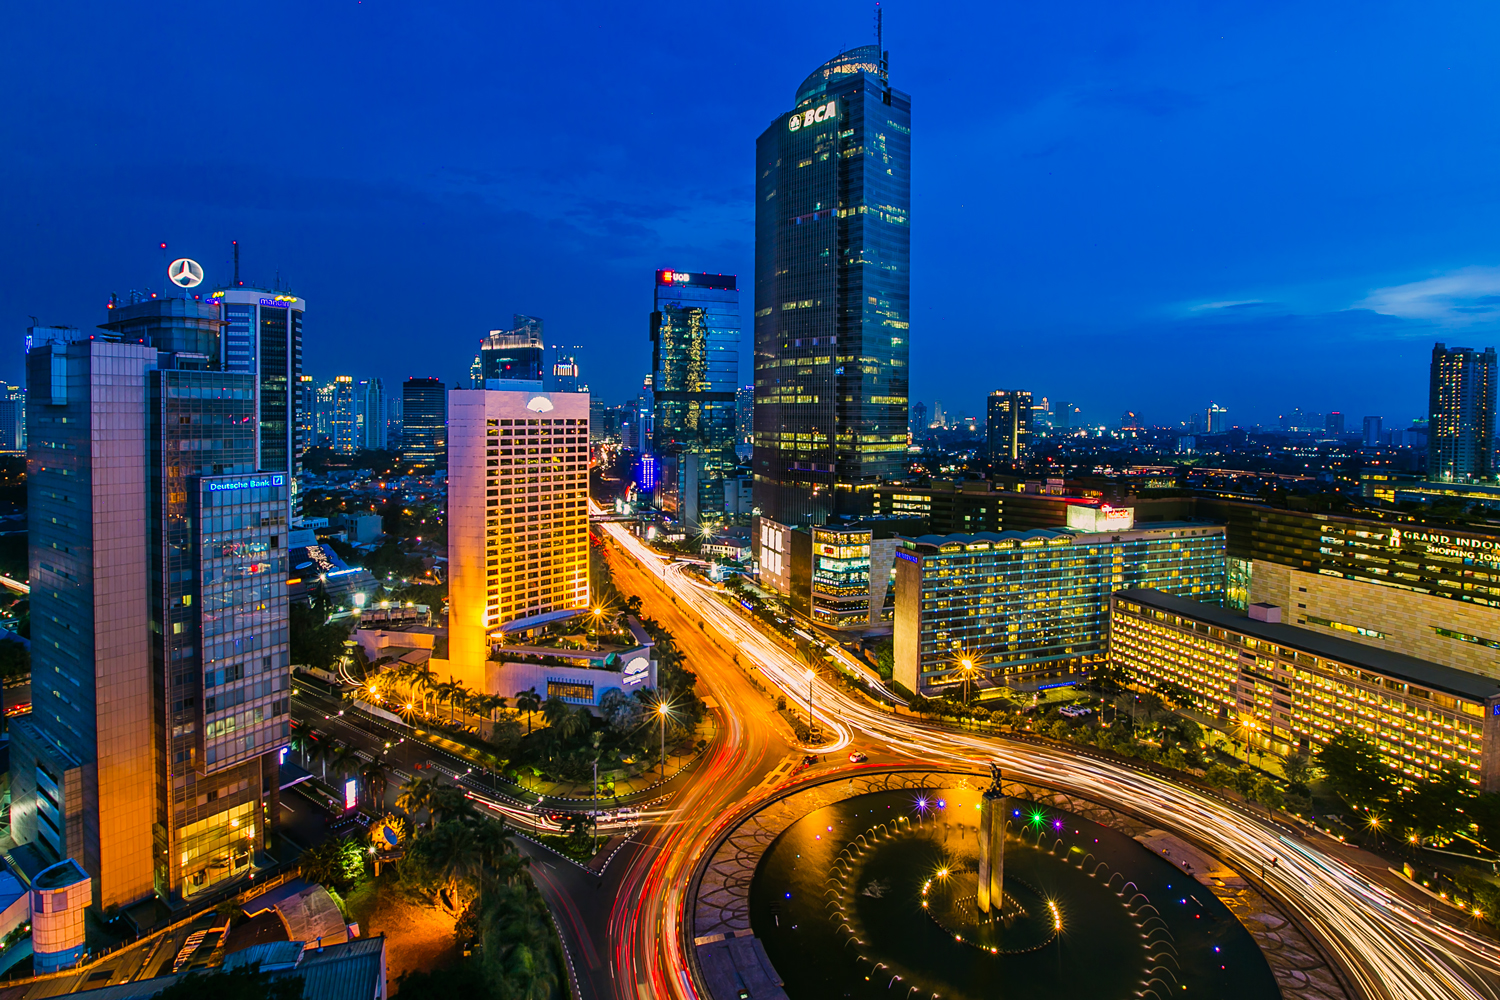 Jakarta - City in Indonesia - Thousand Wonders